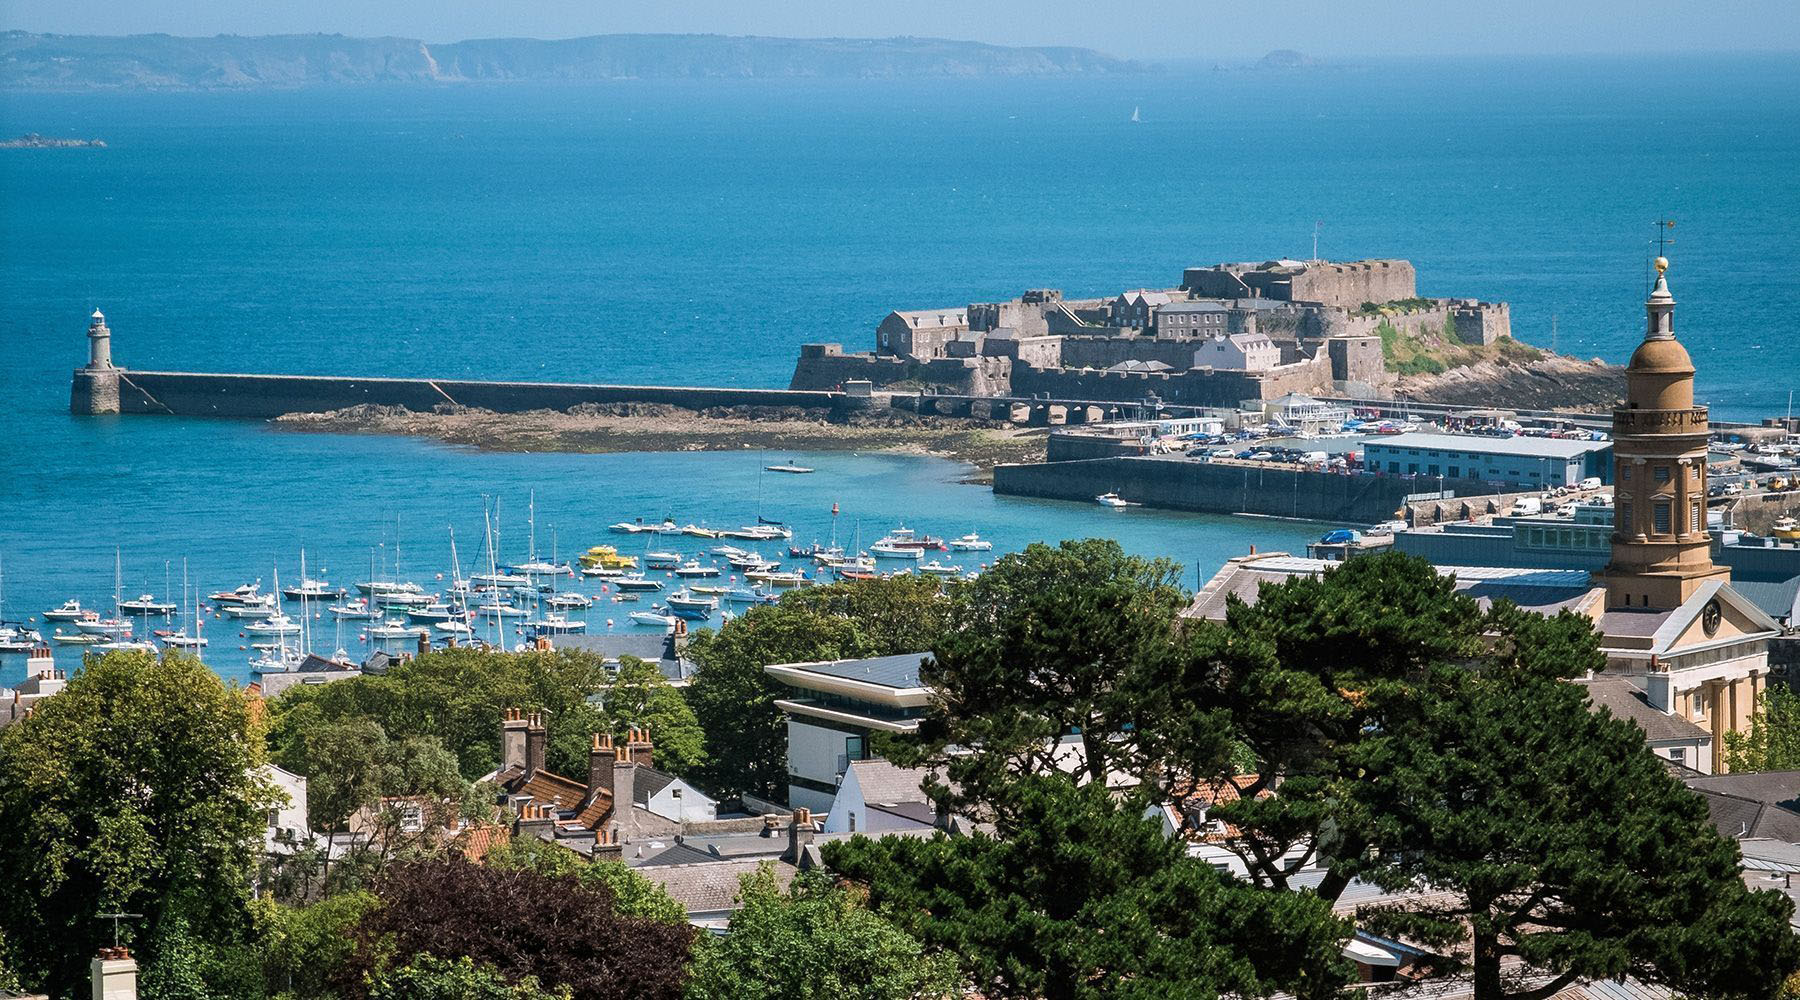 Luxury Cruises to St. Peter Port, Guernsey, Channel Islands